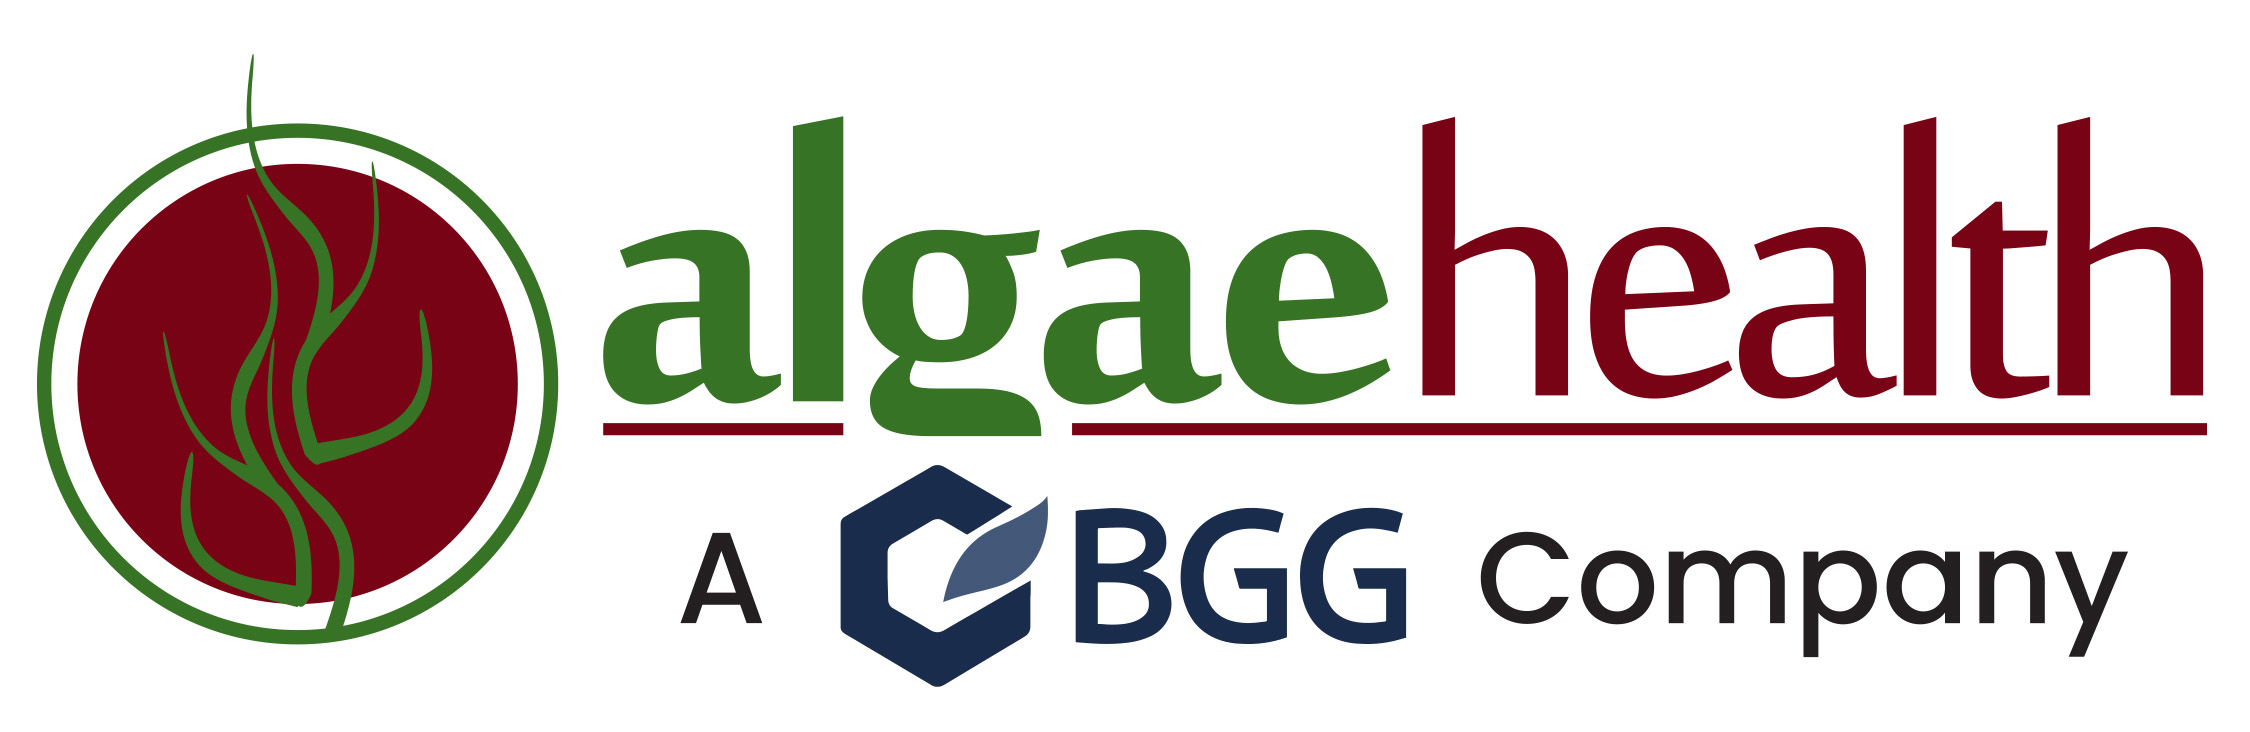 AlgaeHealth-BGG-Co_RGB_300dpi.jpg